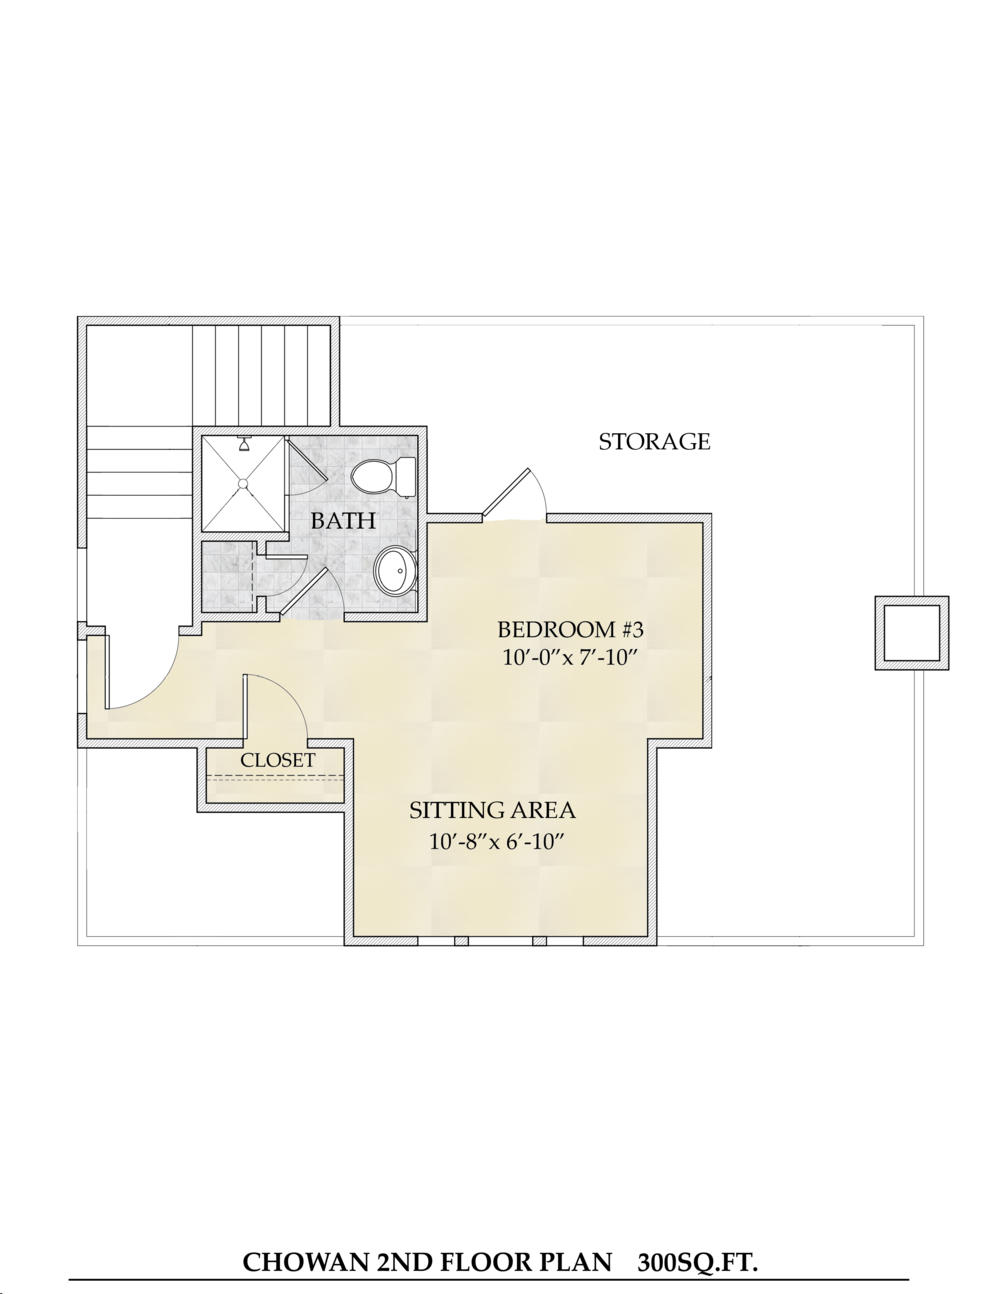 Chowan 2nd Floor Plan final.png